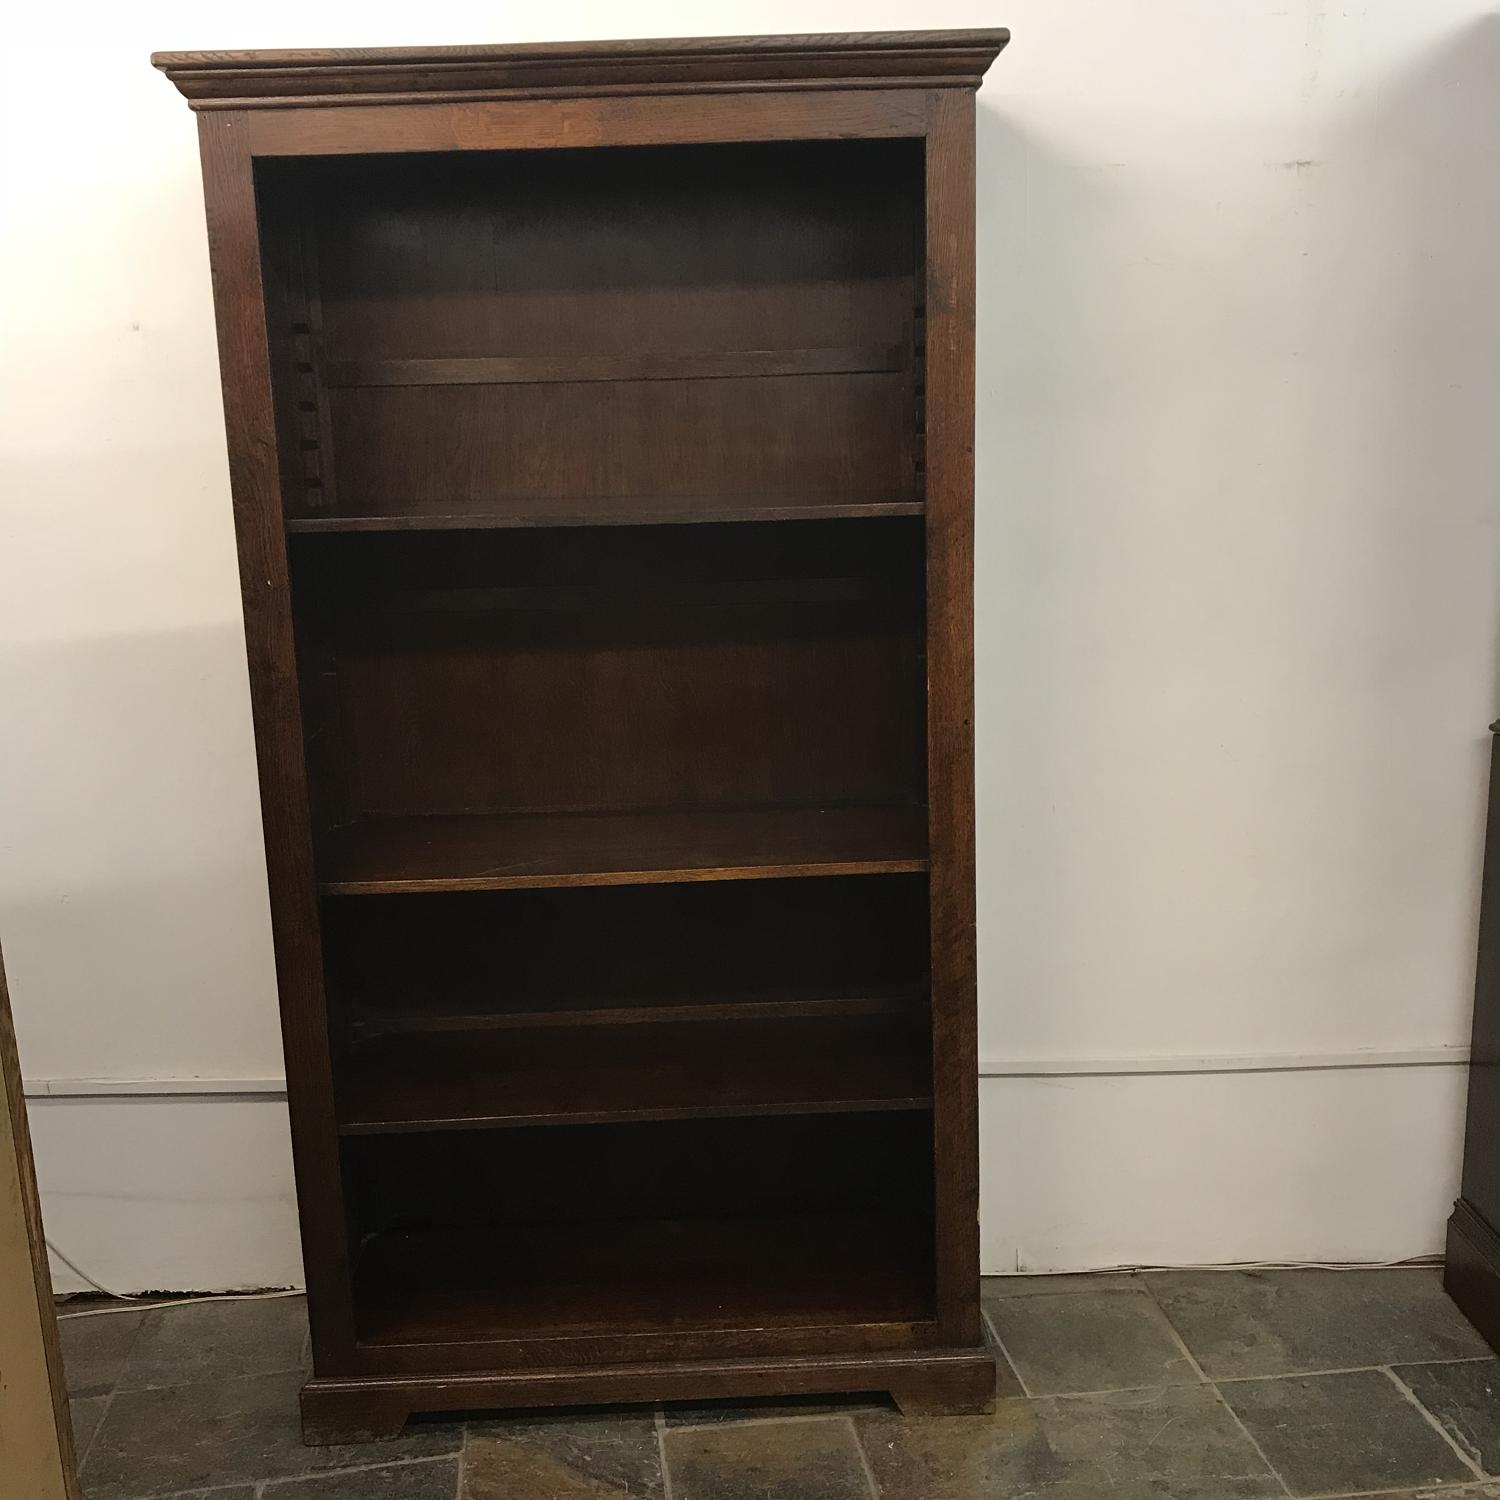 Antique Oak Book Shelf Shop Display